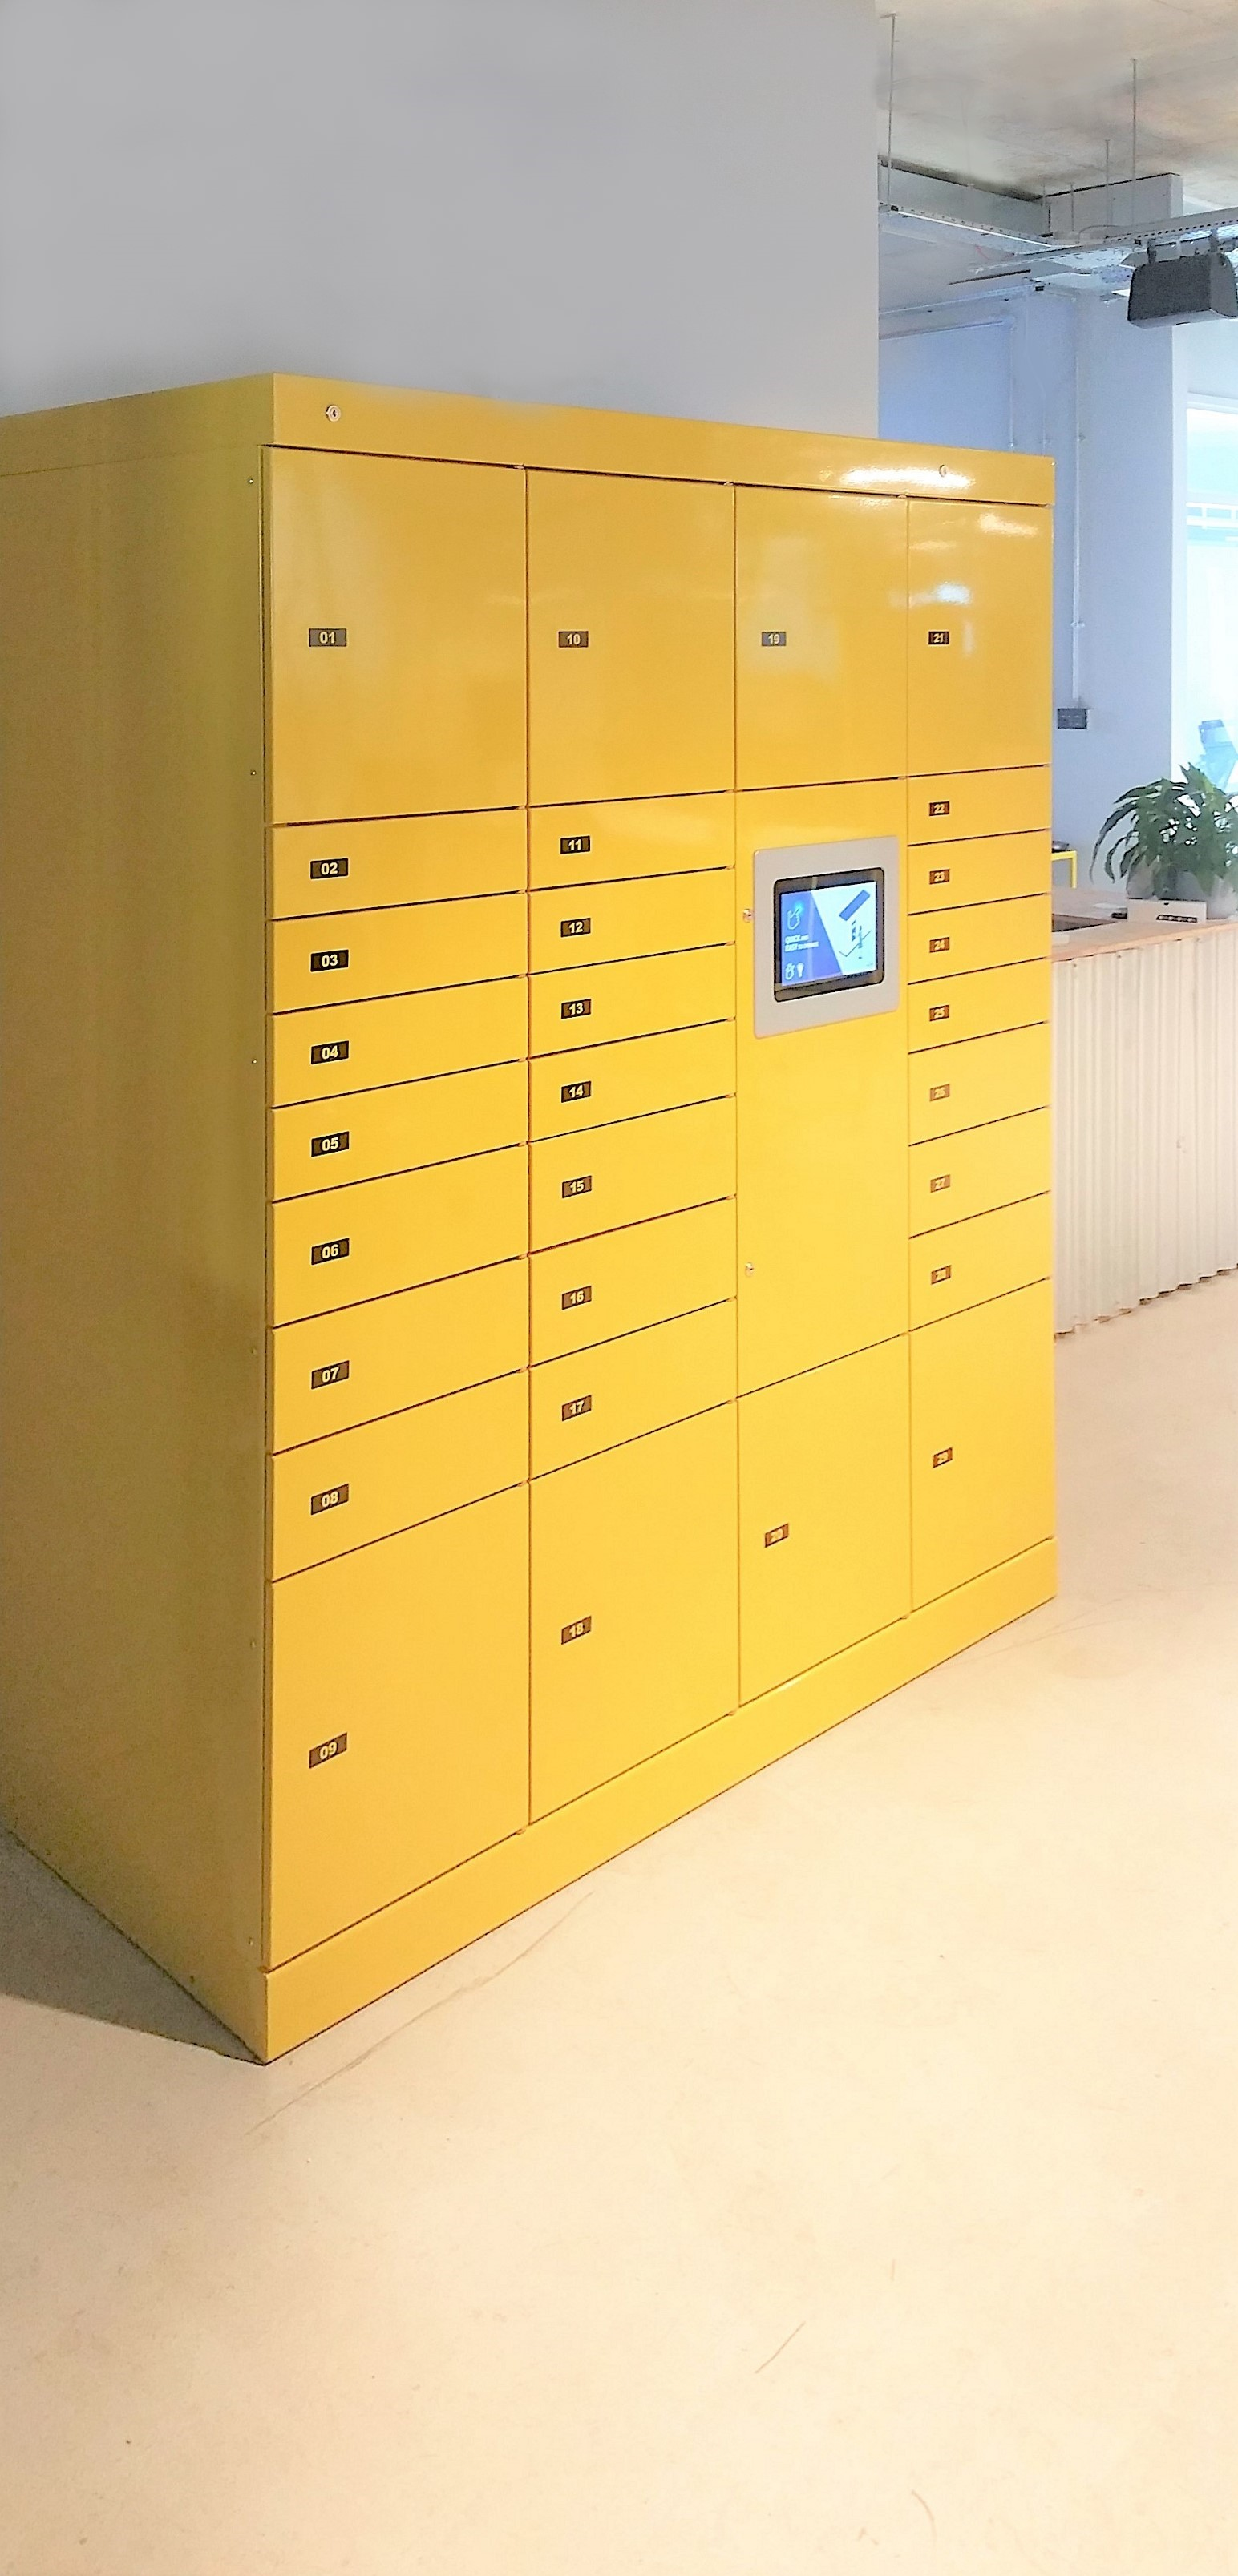 Pakketautomaat met click & collect – Servicebox